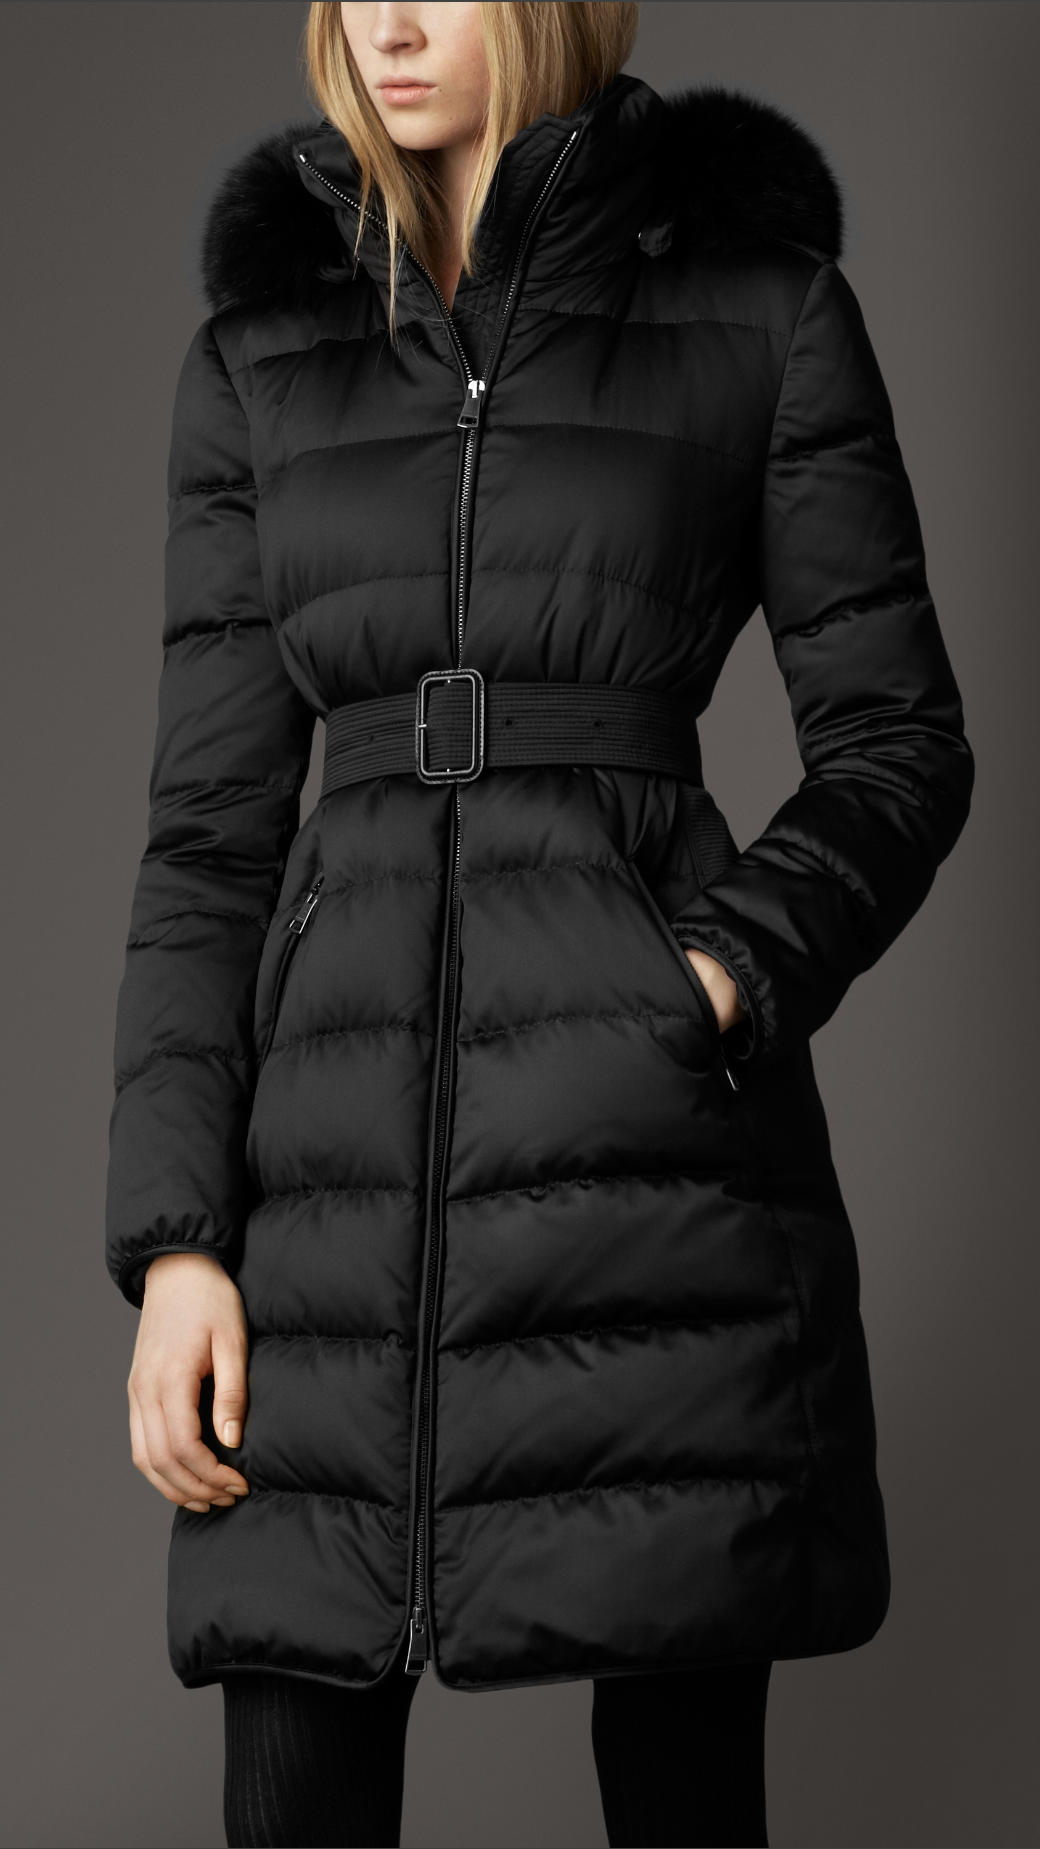 Burberry Fur Trim Puffer in Black | Lyst